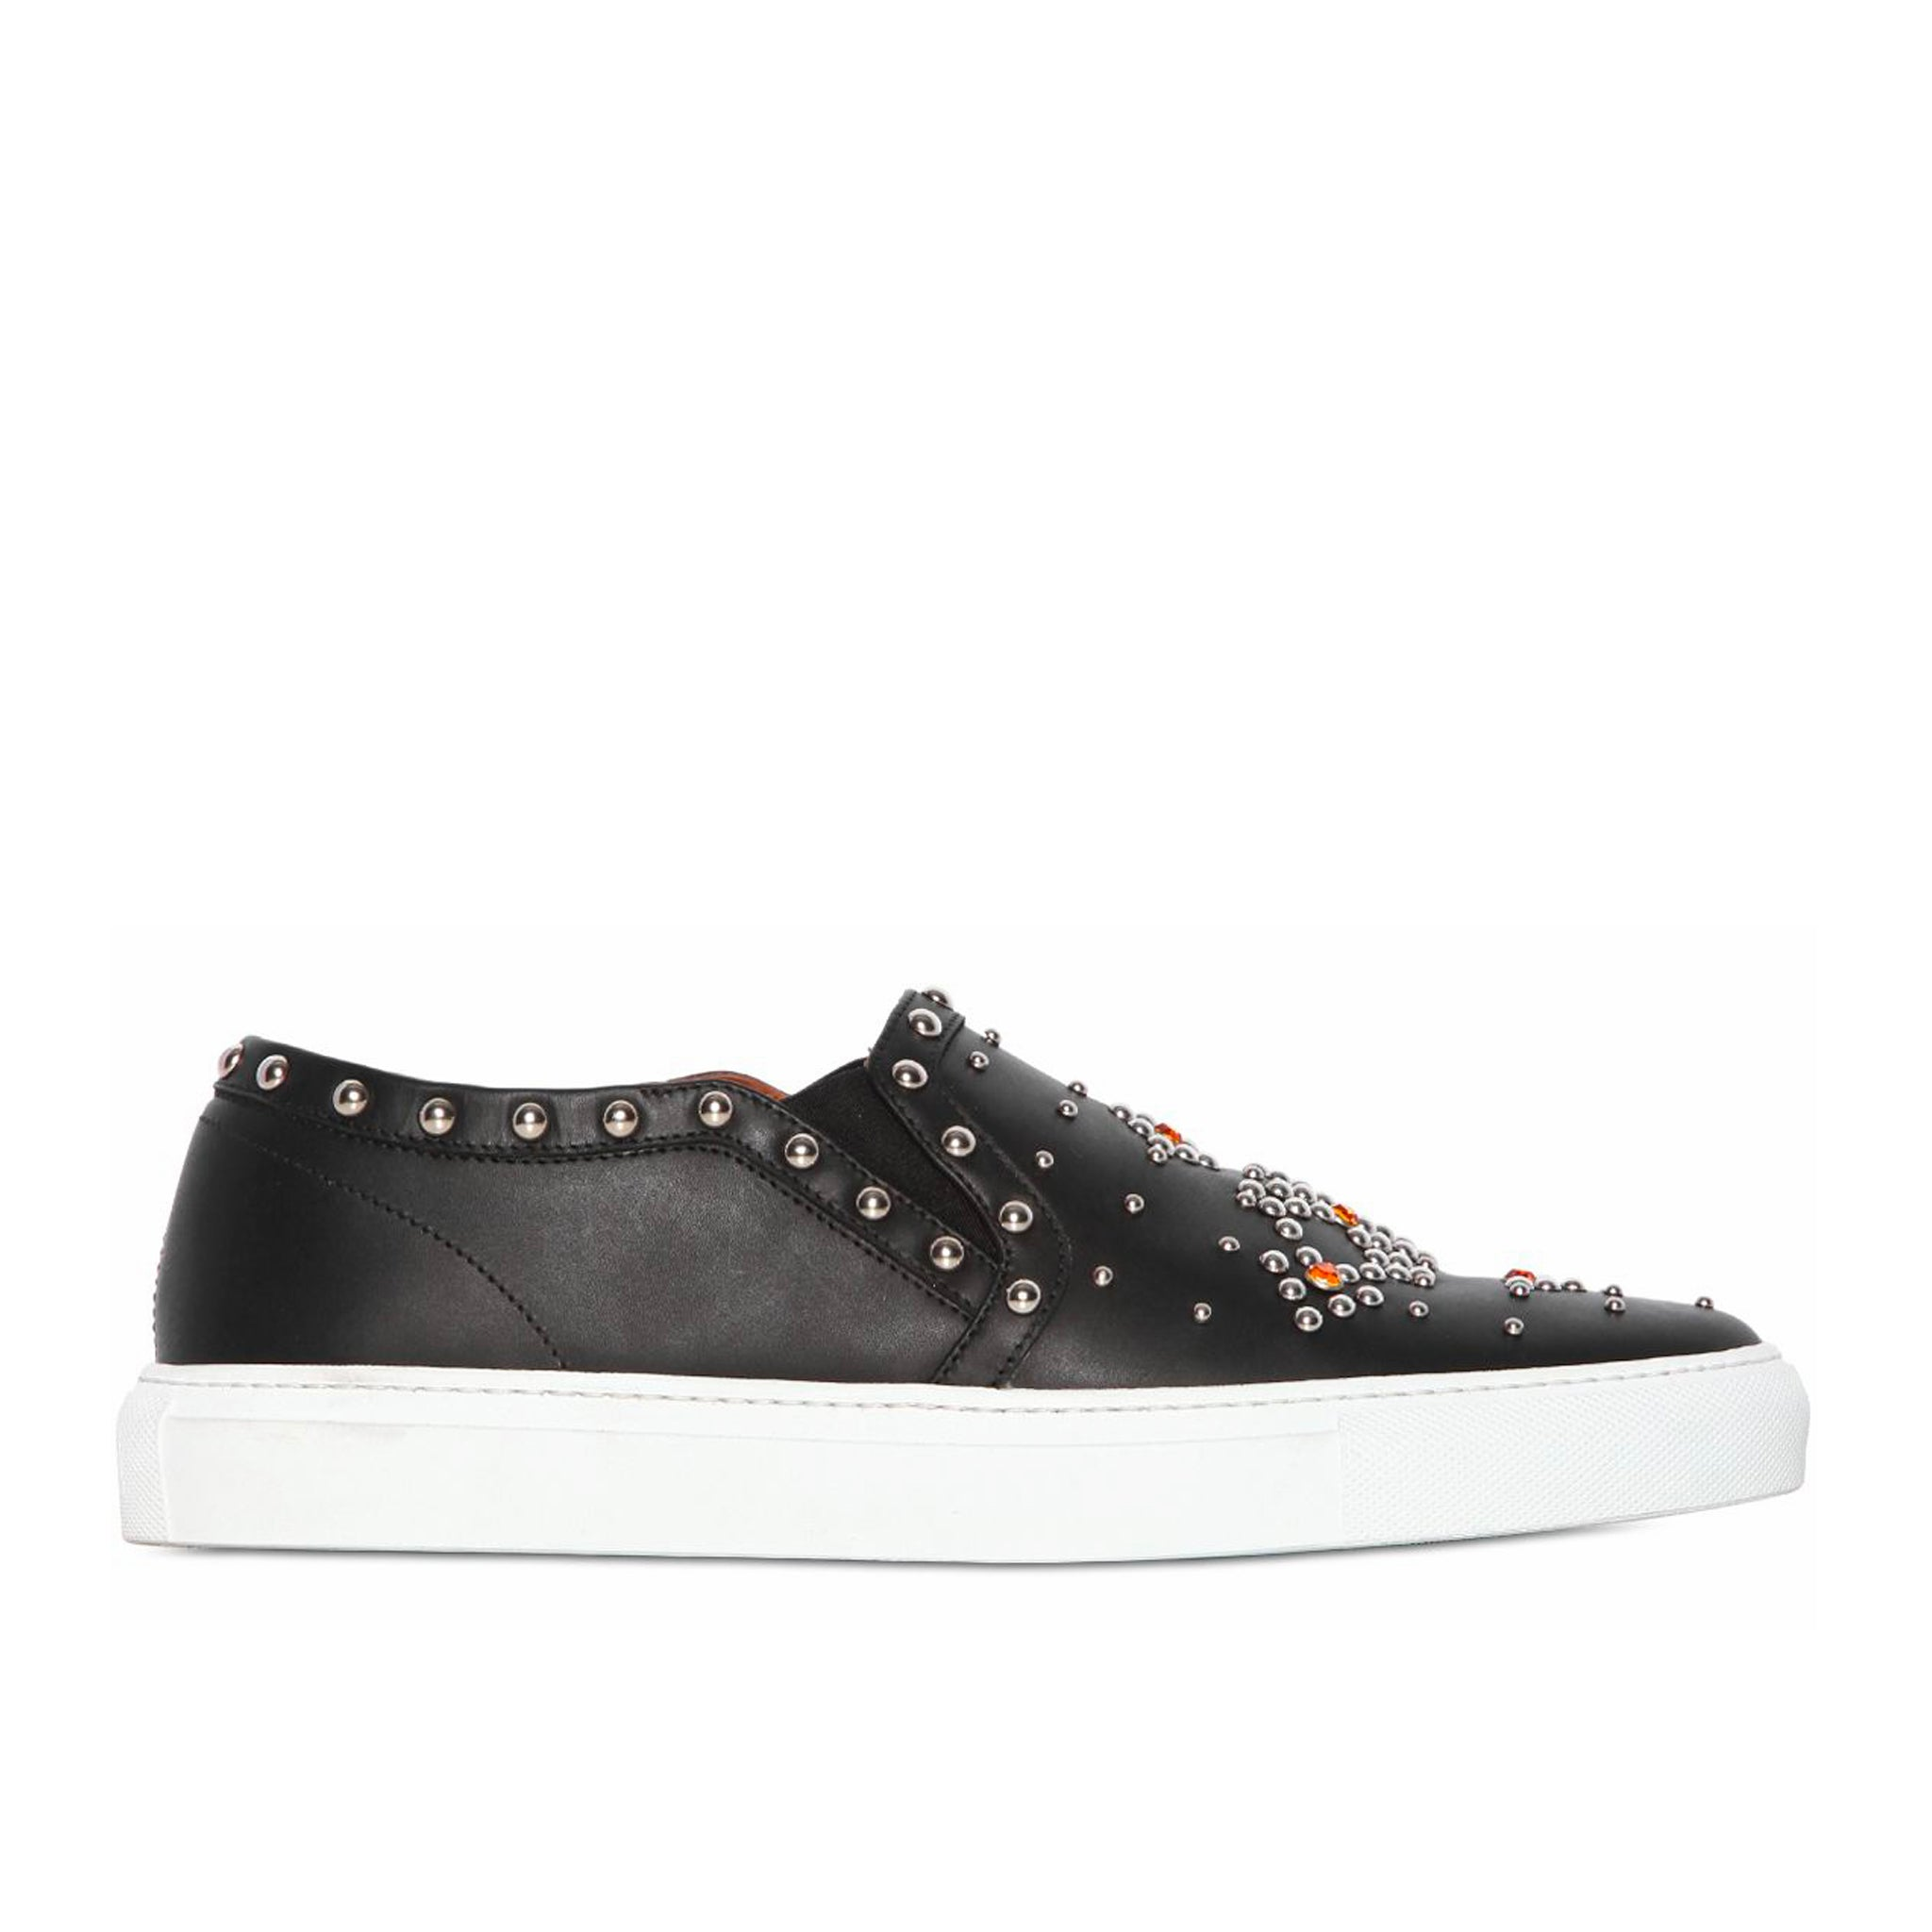 Givenchy Leather Slip On Sneakers